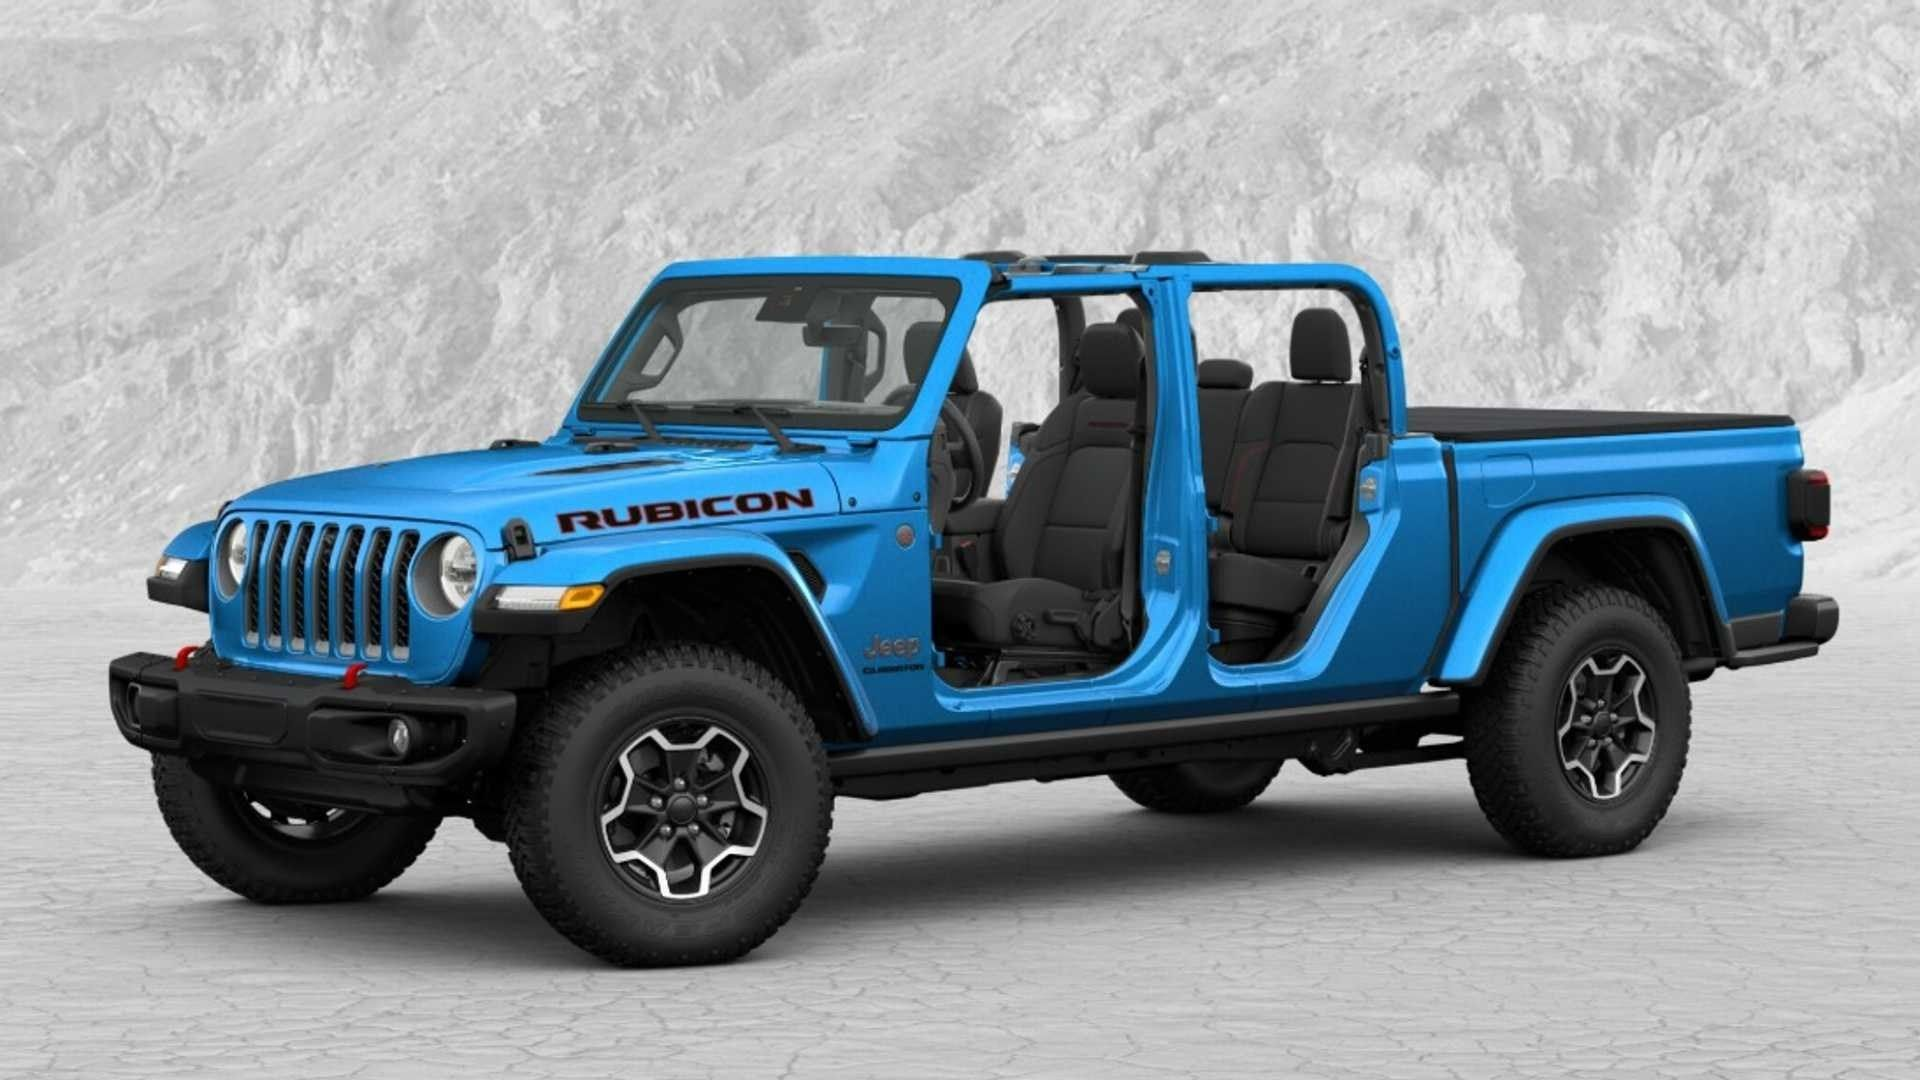 when will the Jeep Rubicon 2020 Price be released (With